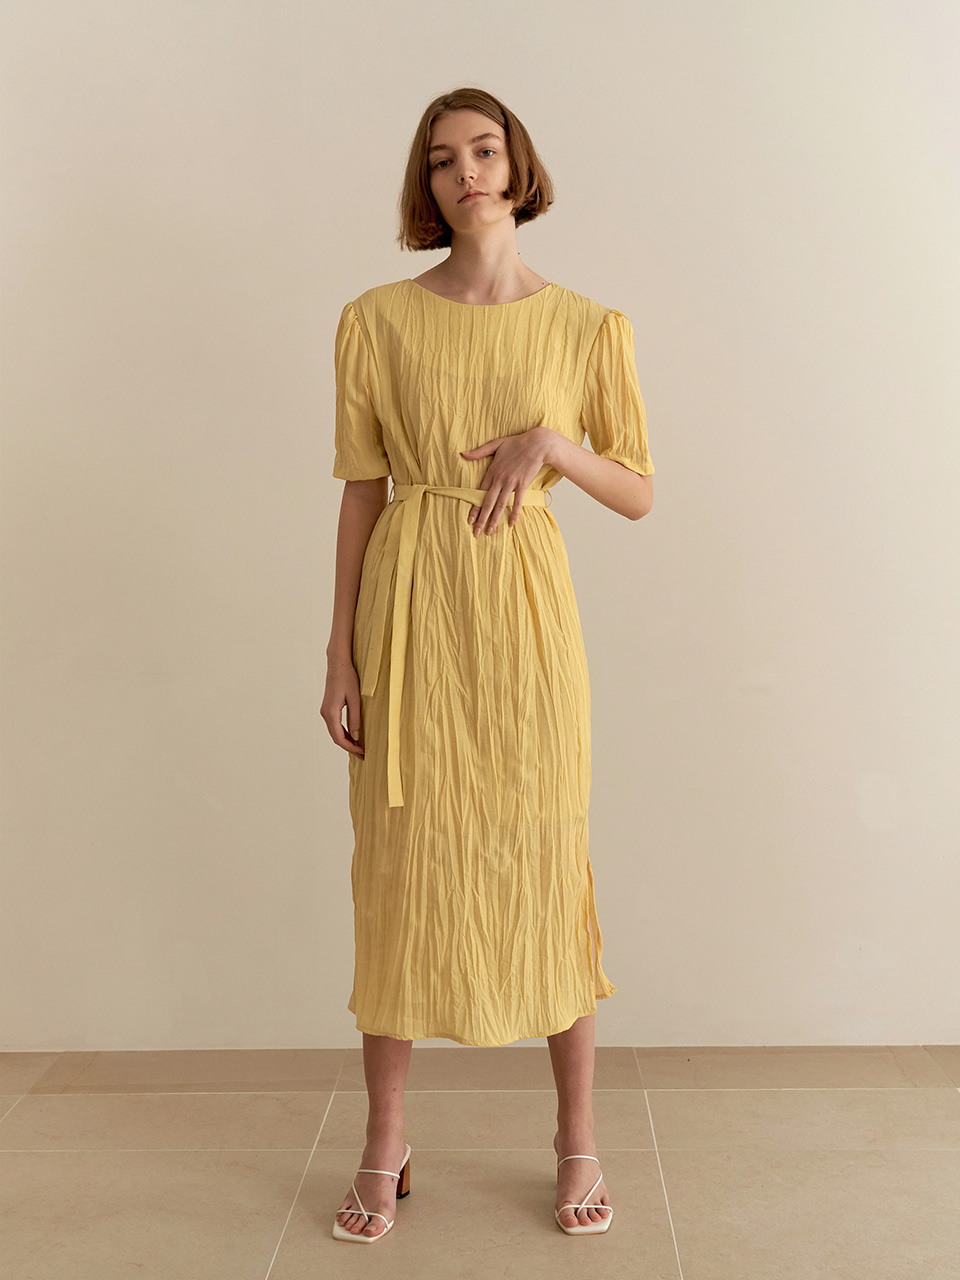 [7/7순차배송] Wrinkle reversible dress - yellow